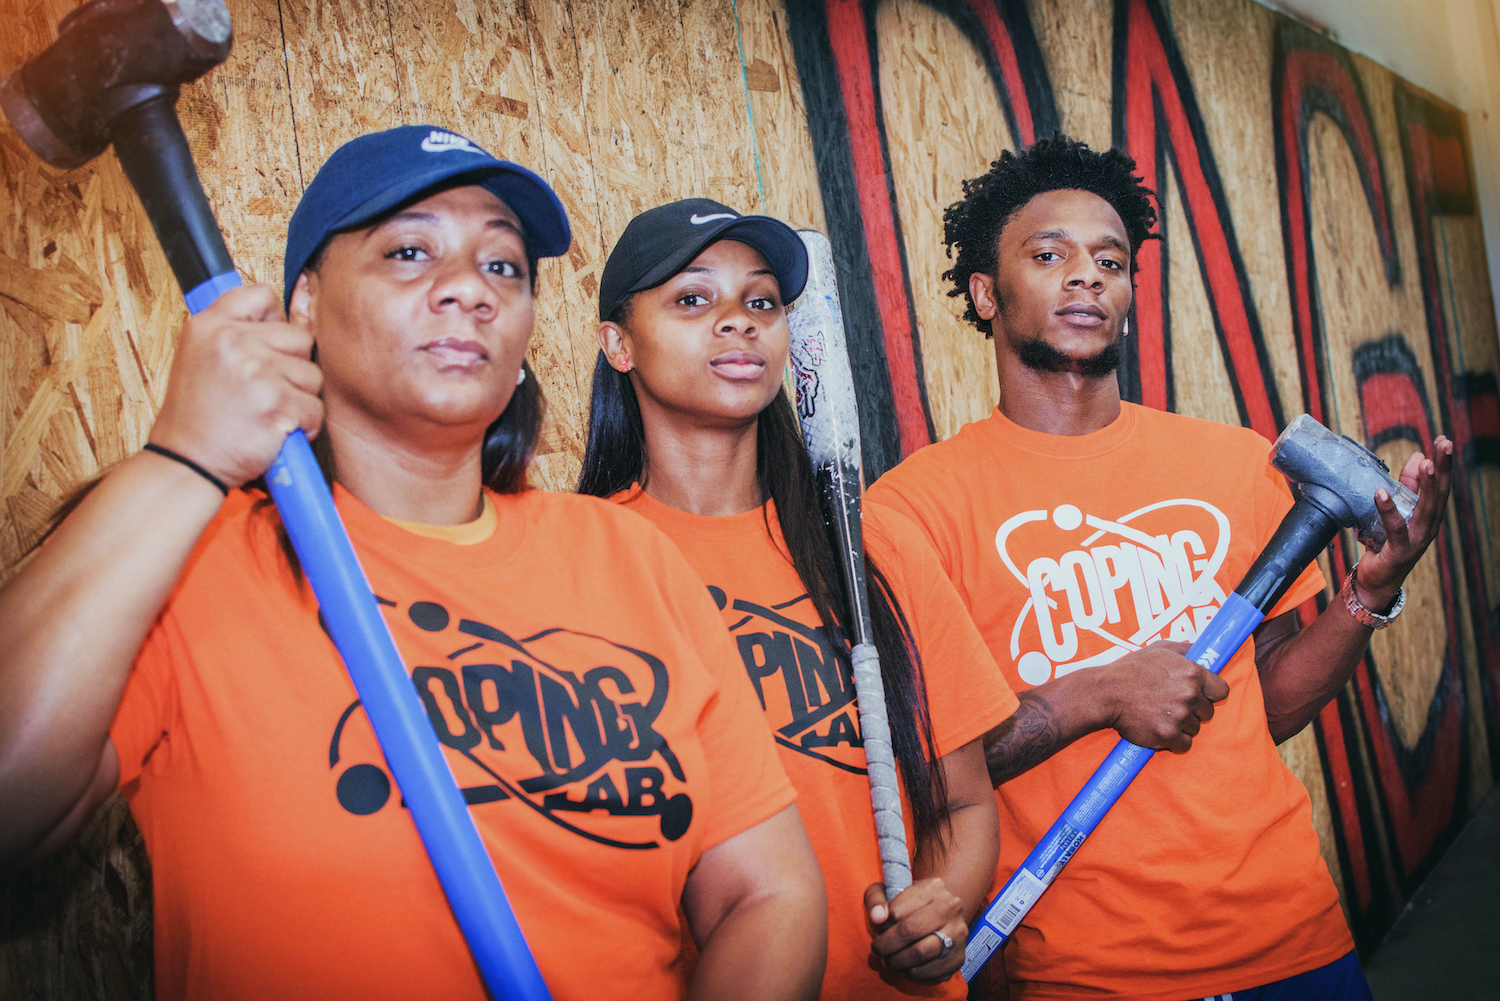 The Melton family, owners of Coping Lab and Rage Room Orlando.